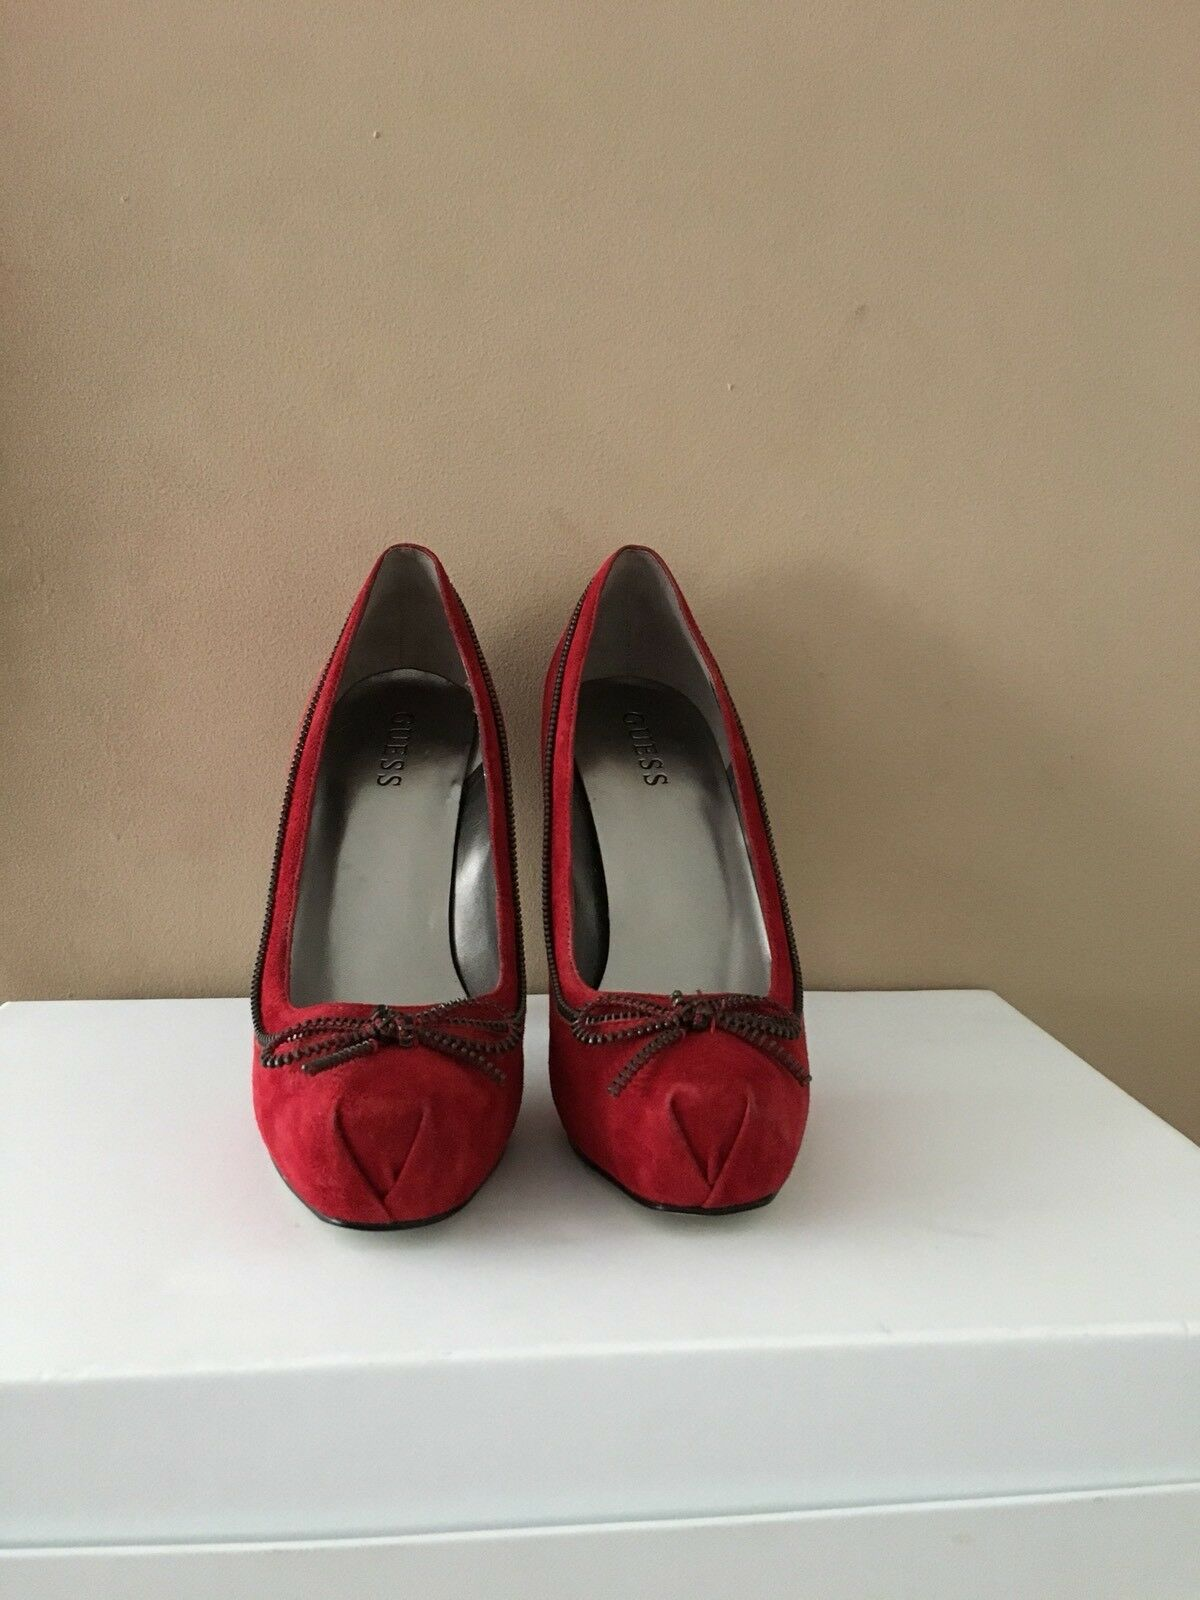 Guess Ladies Red Suede shoes Size US8.5 UK6.5 BNWOB